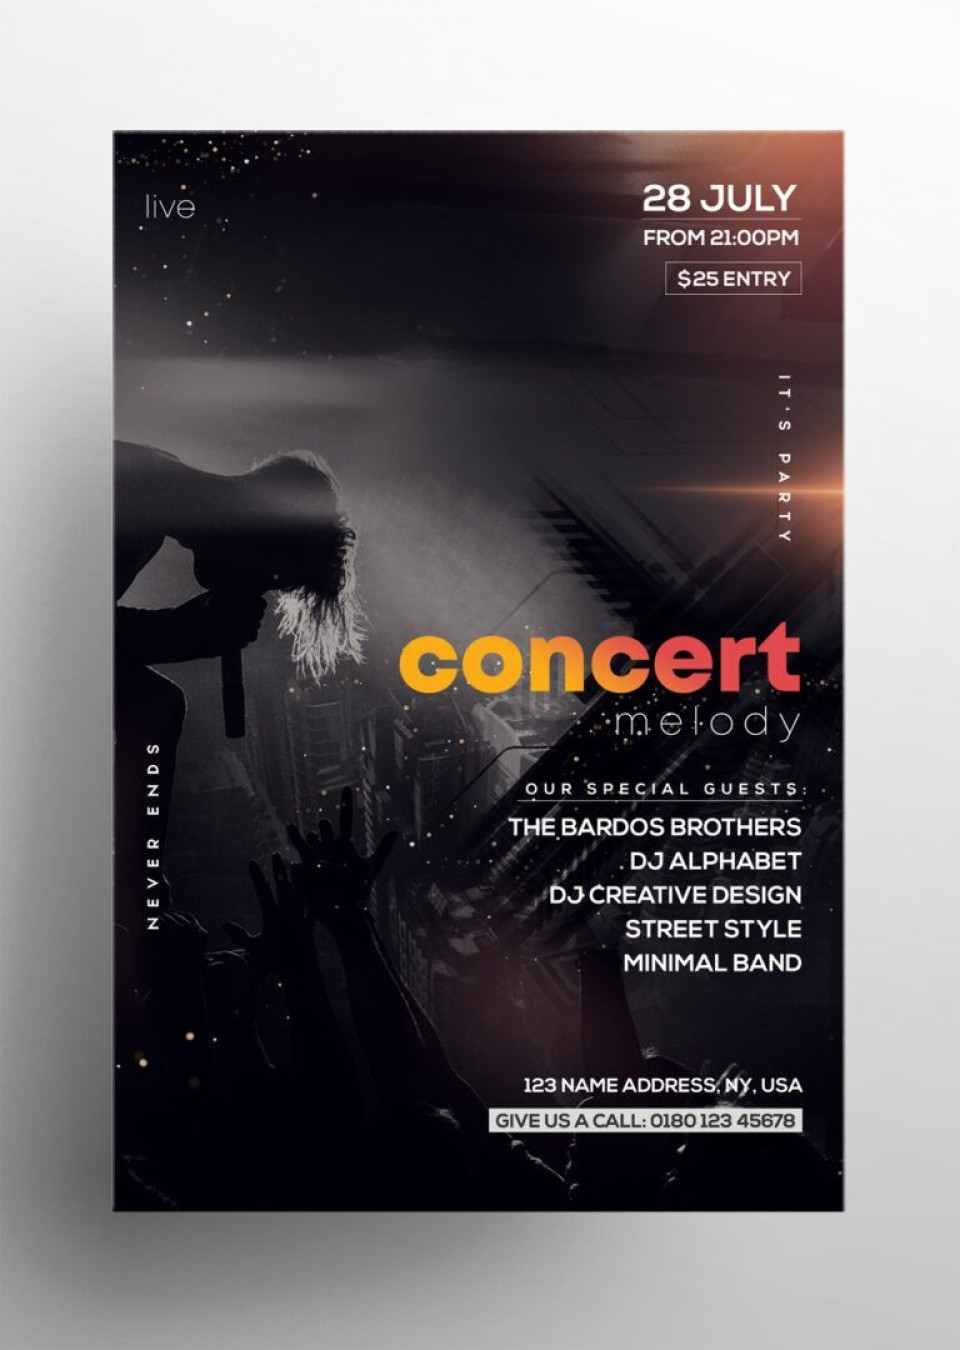 000 Unforgettable Free Concert Poster Template Highest Clarity  Rock Psd Christma Photoshop960